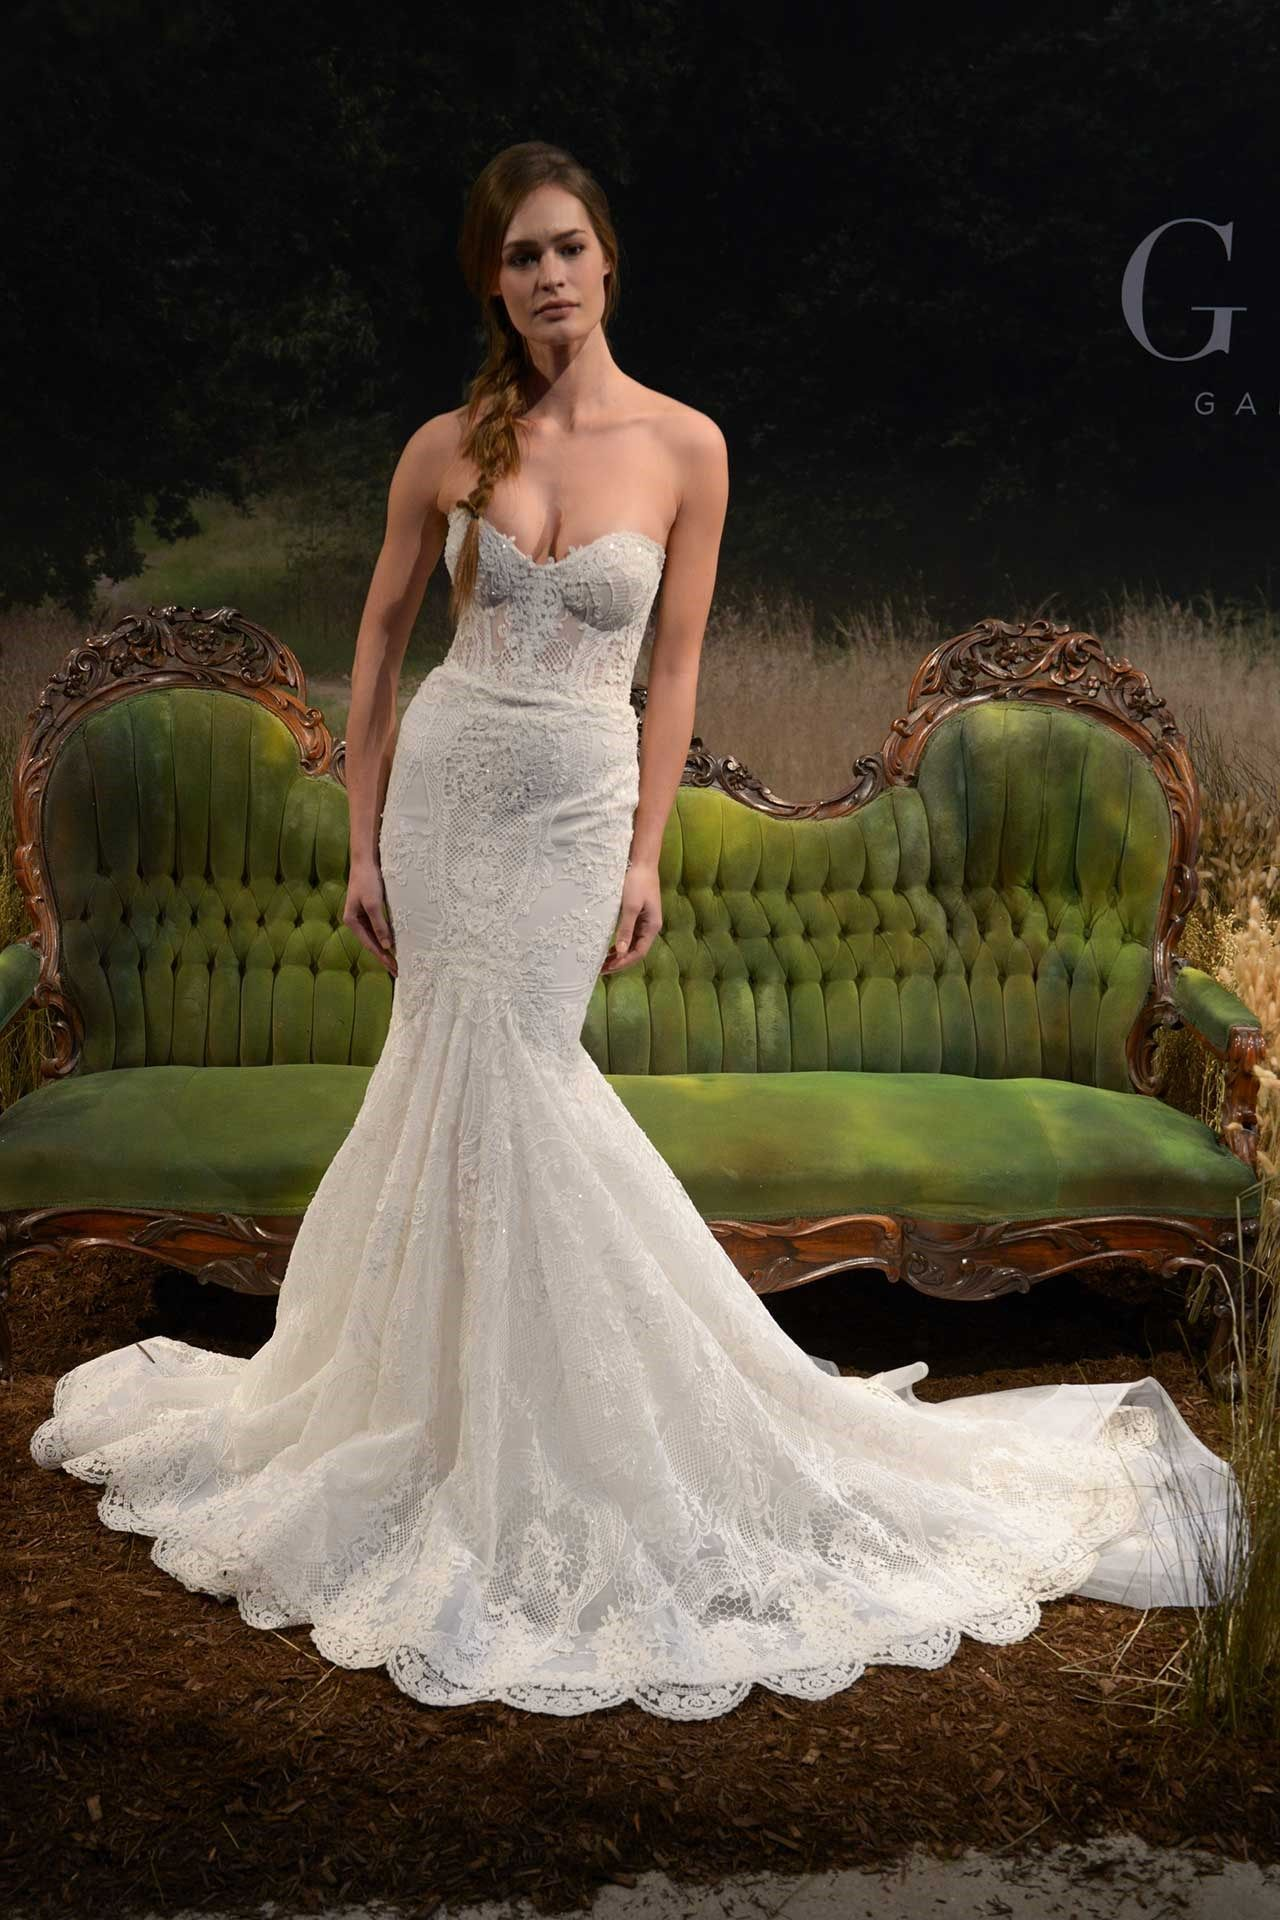 Available At Bridal Reflections On Fifth Avenue, NYC